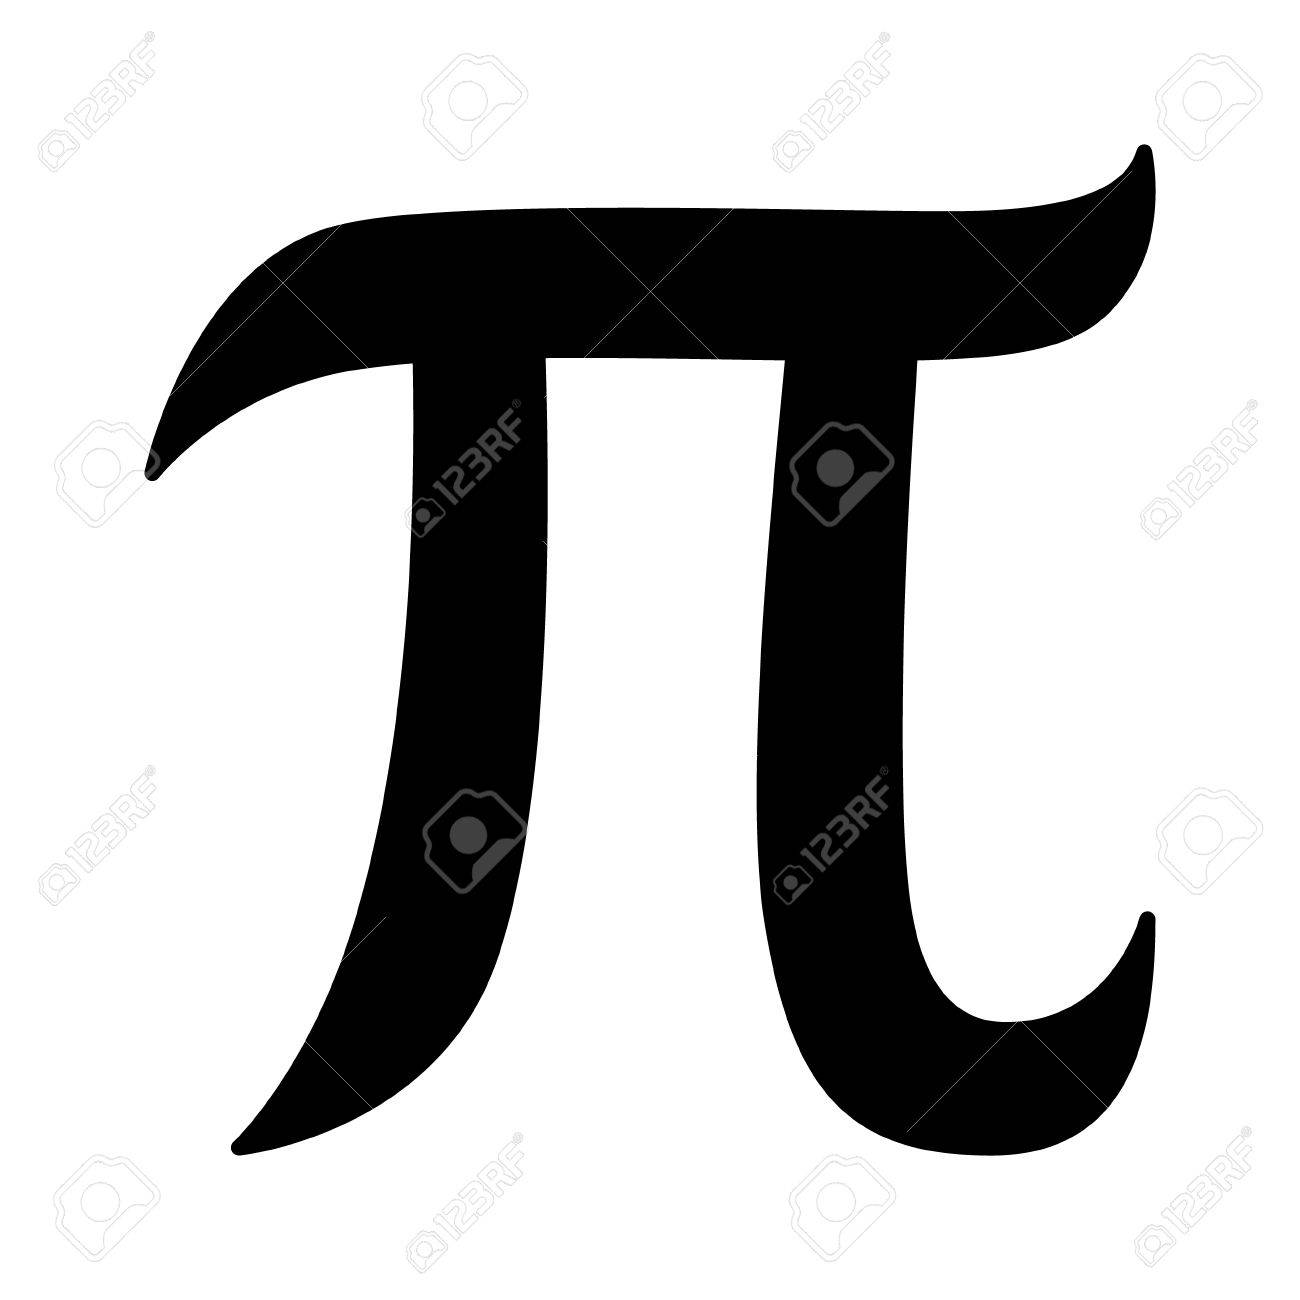 Pi 314 Mathematical Constant Sign Or Symbol Flat Icon For Math